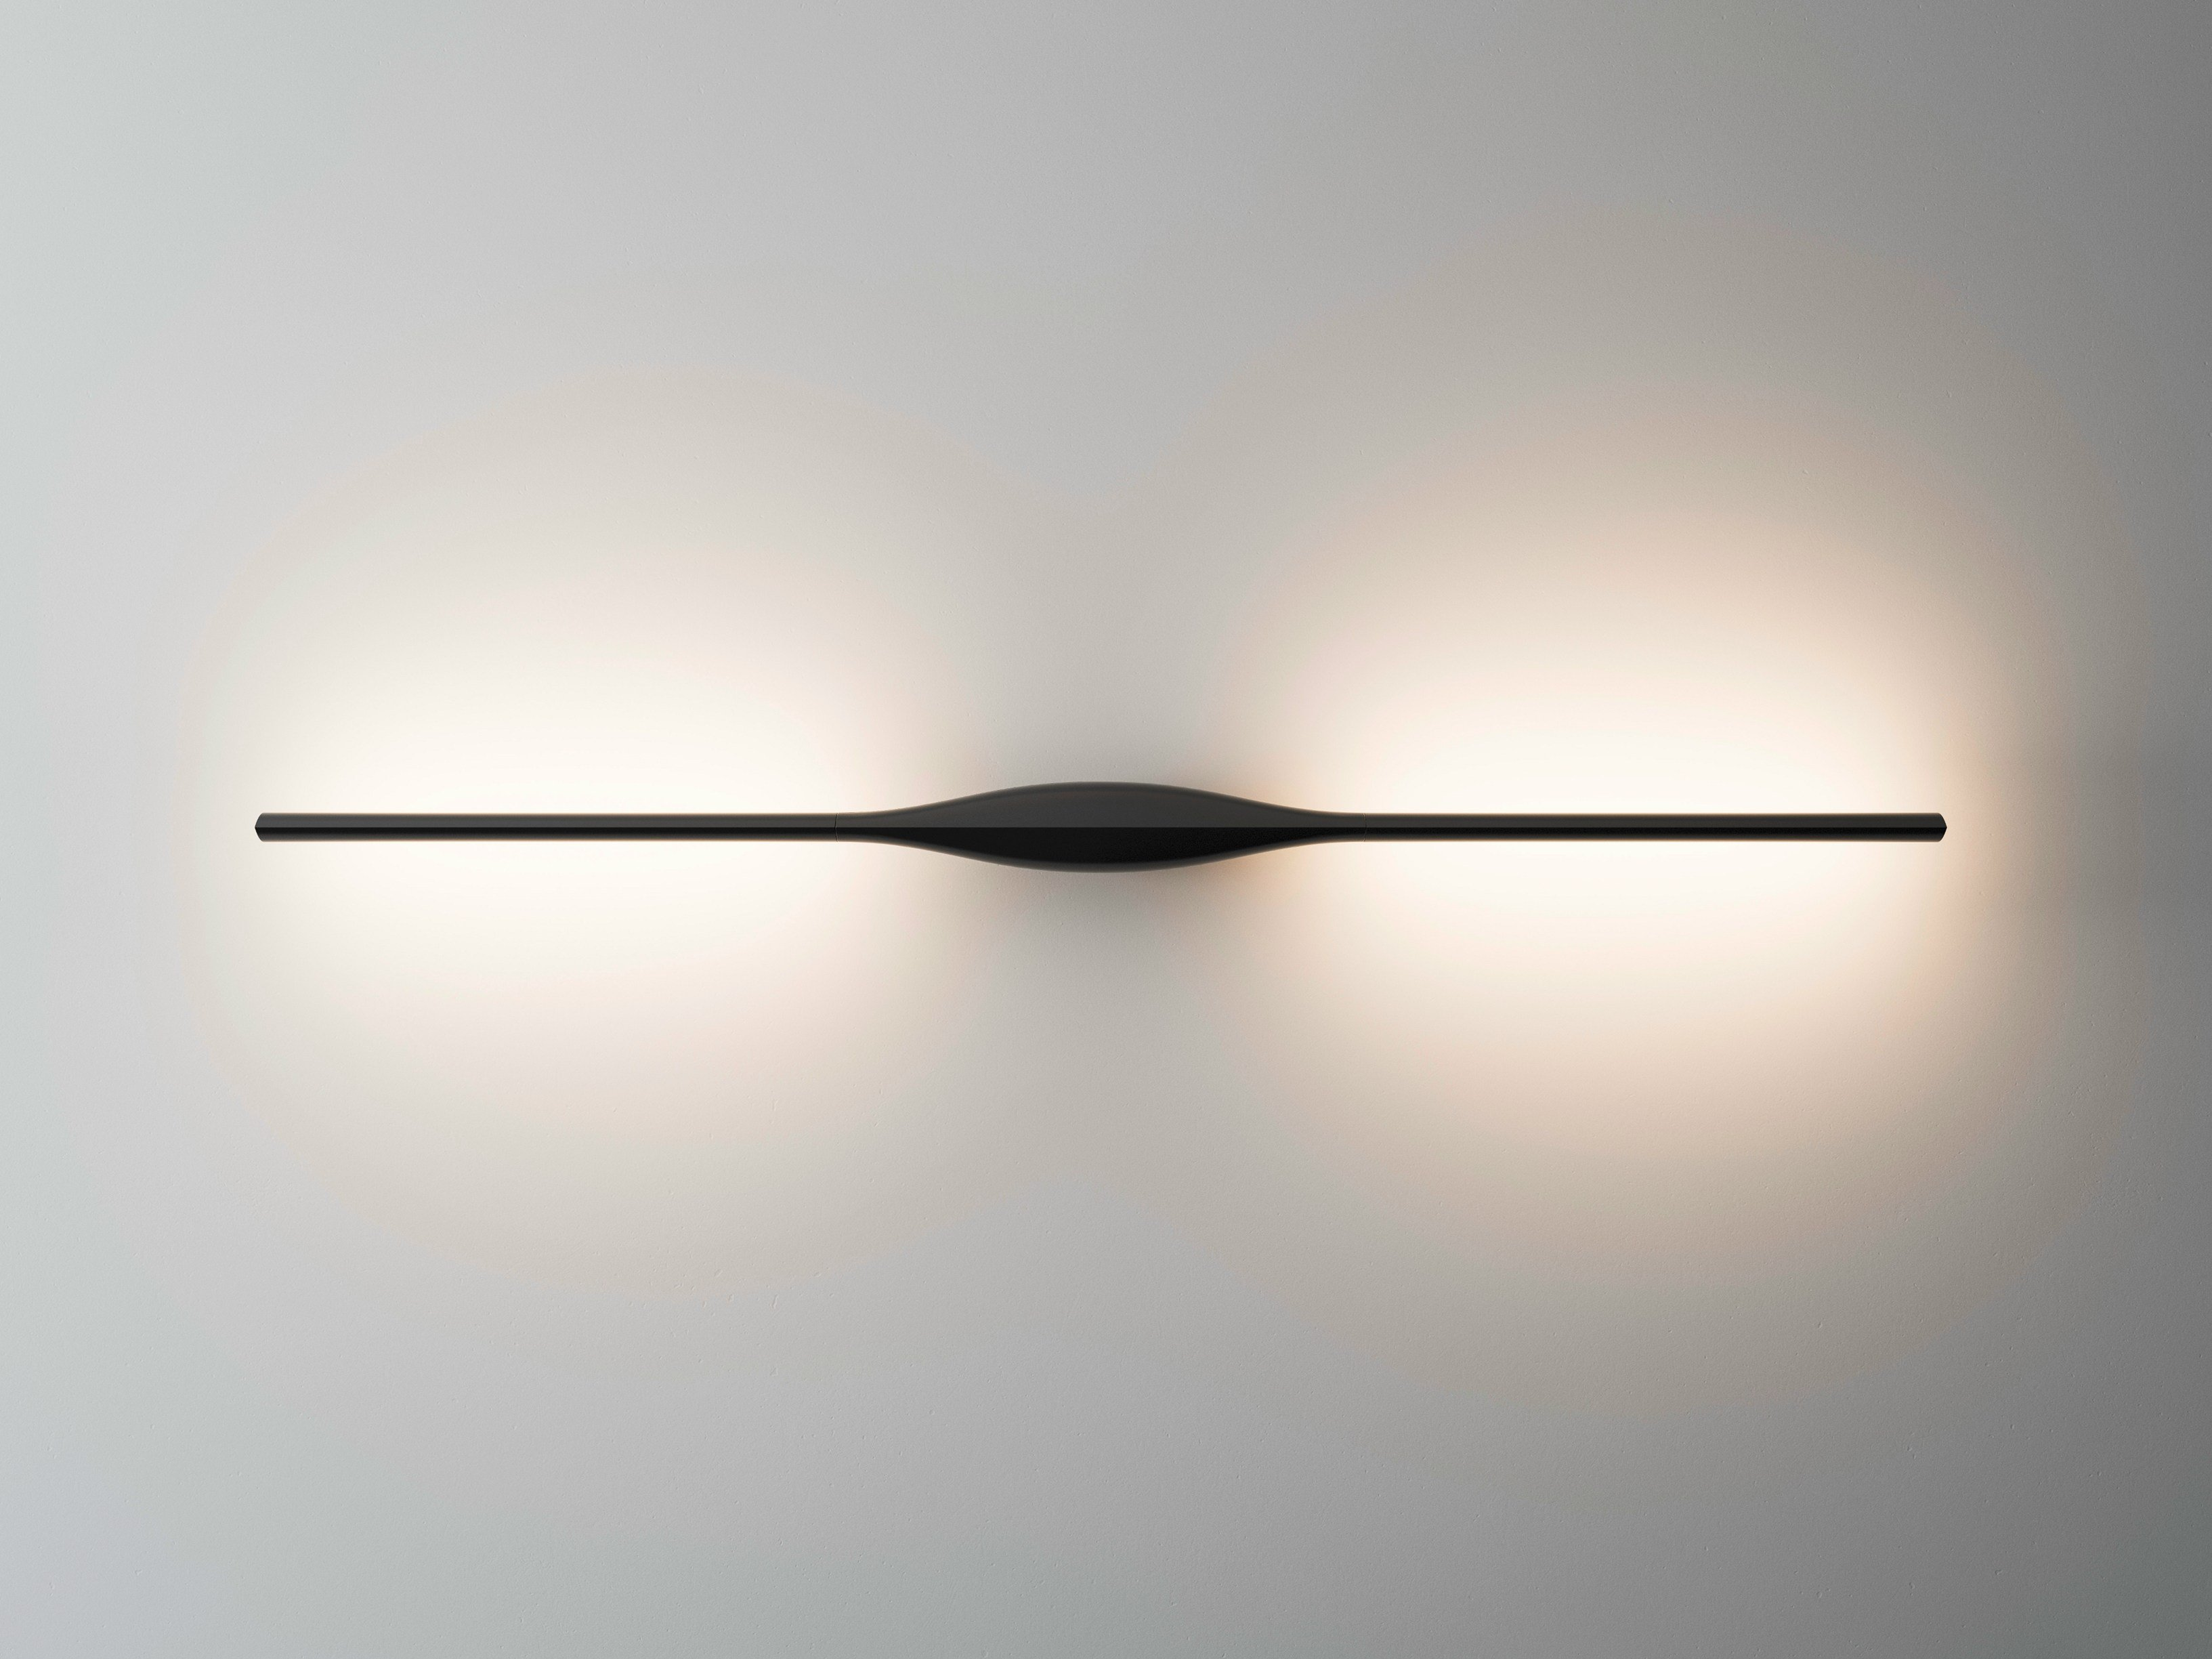 LED wall light APEX by FontanaArte design Karim Rashid